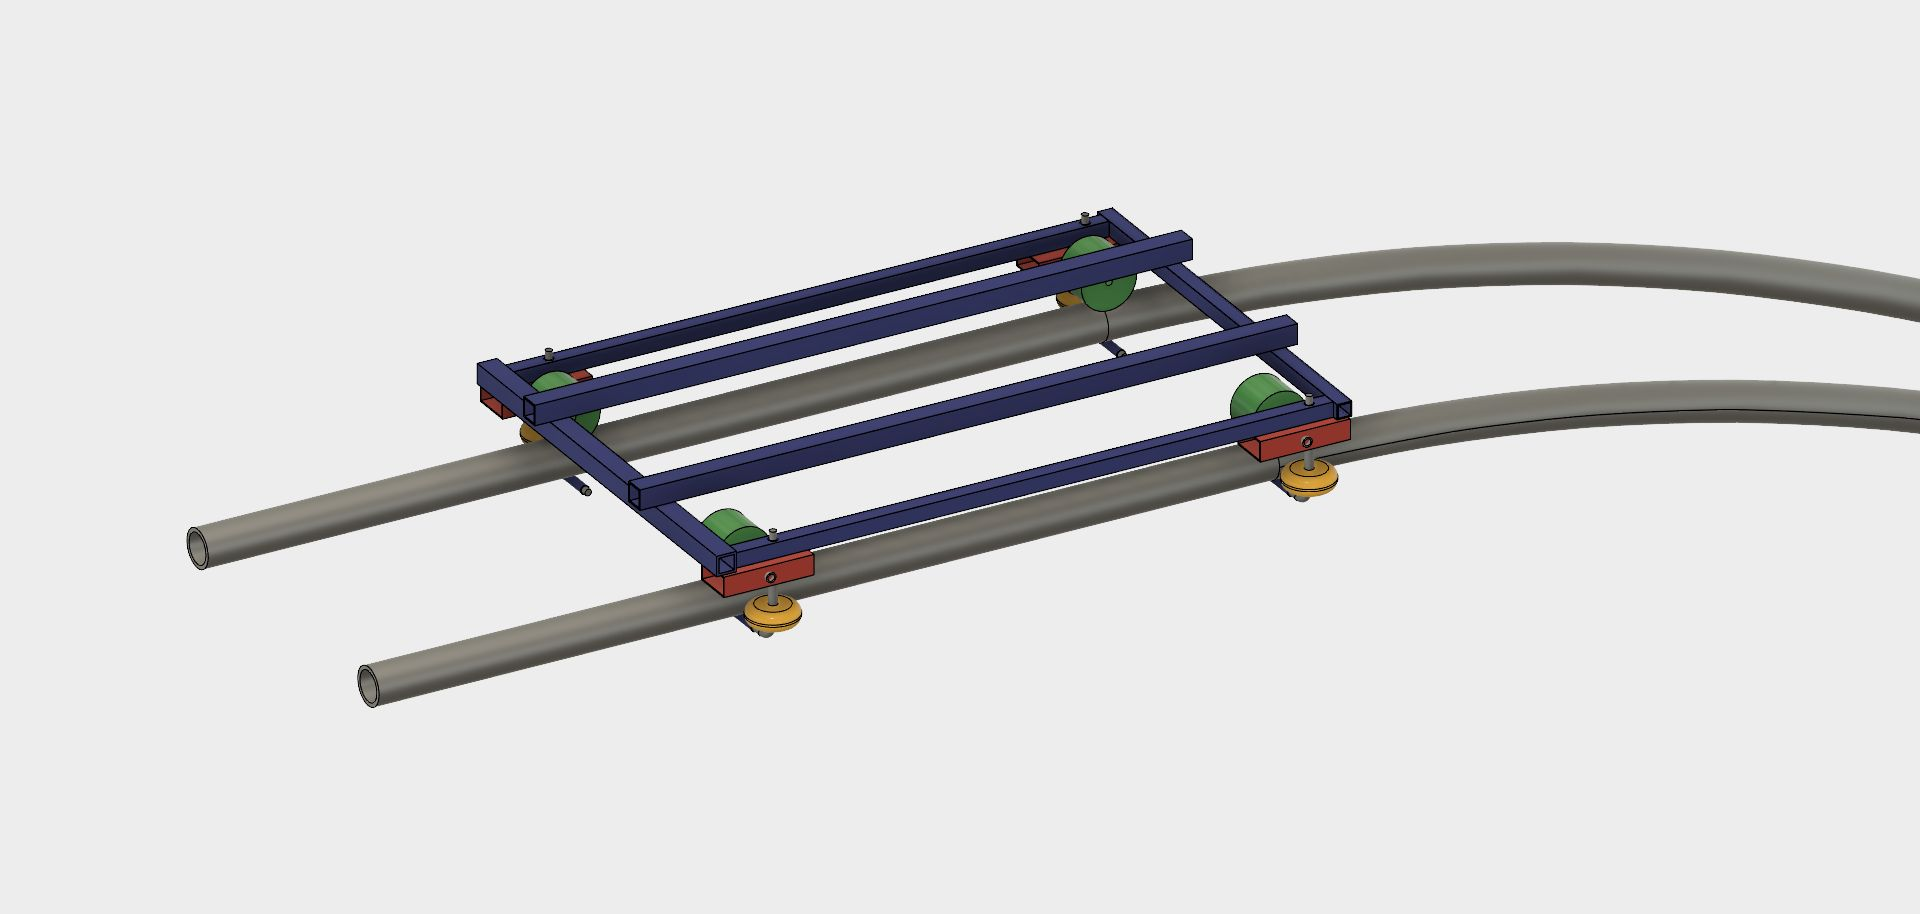 """2D Out-and-Back """"Negative G"""" Backyard Roller Coaster ..."""